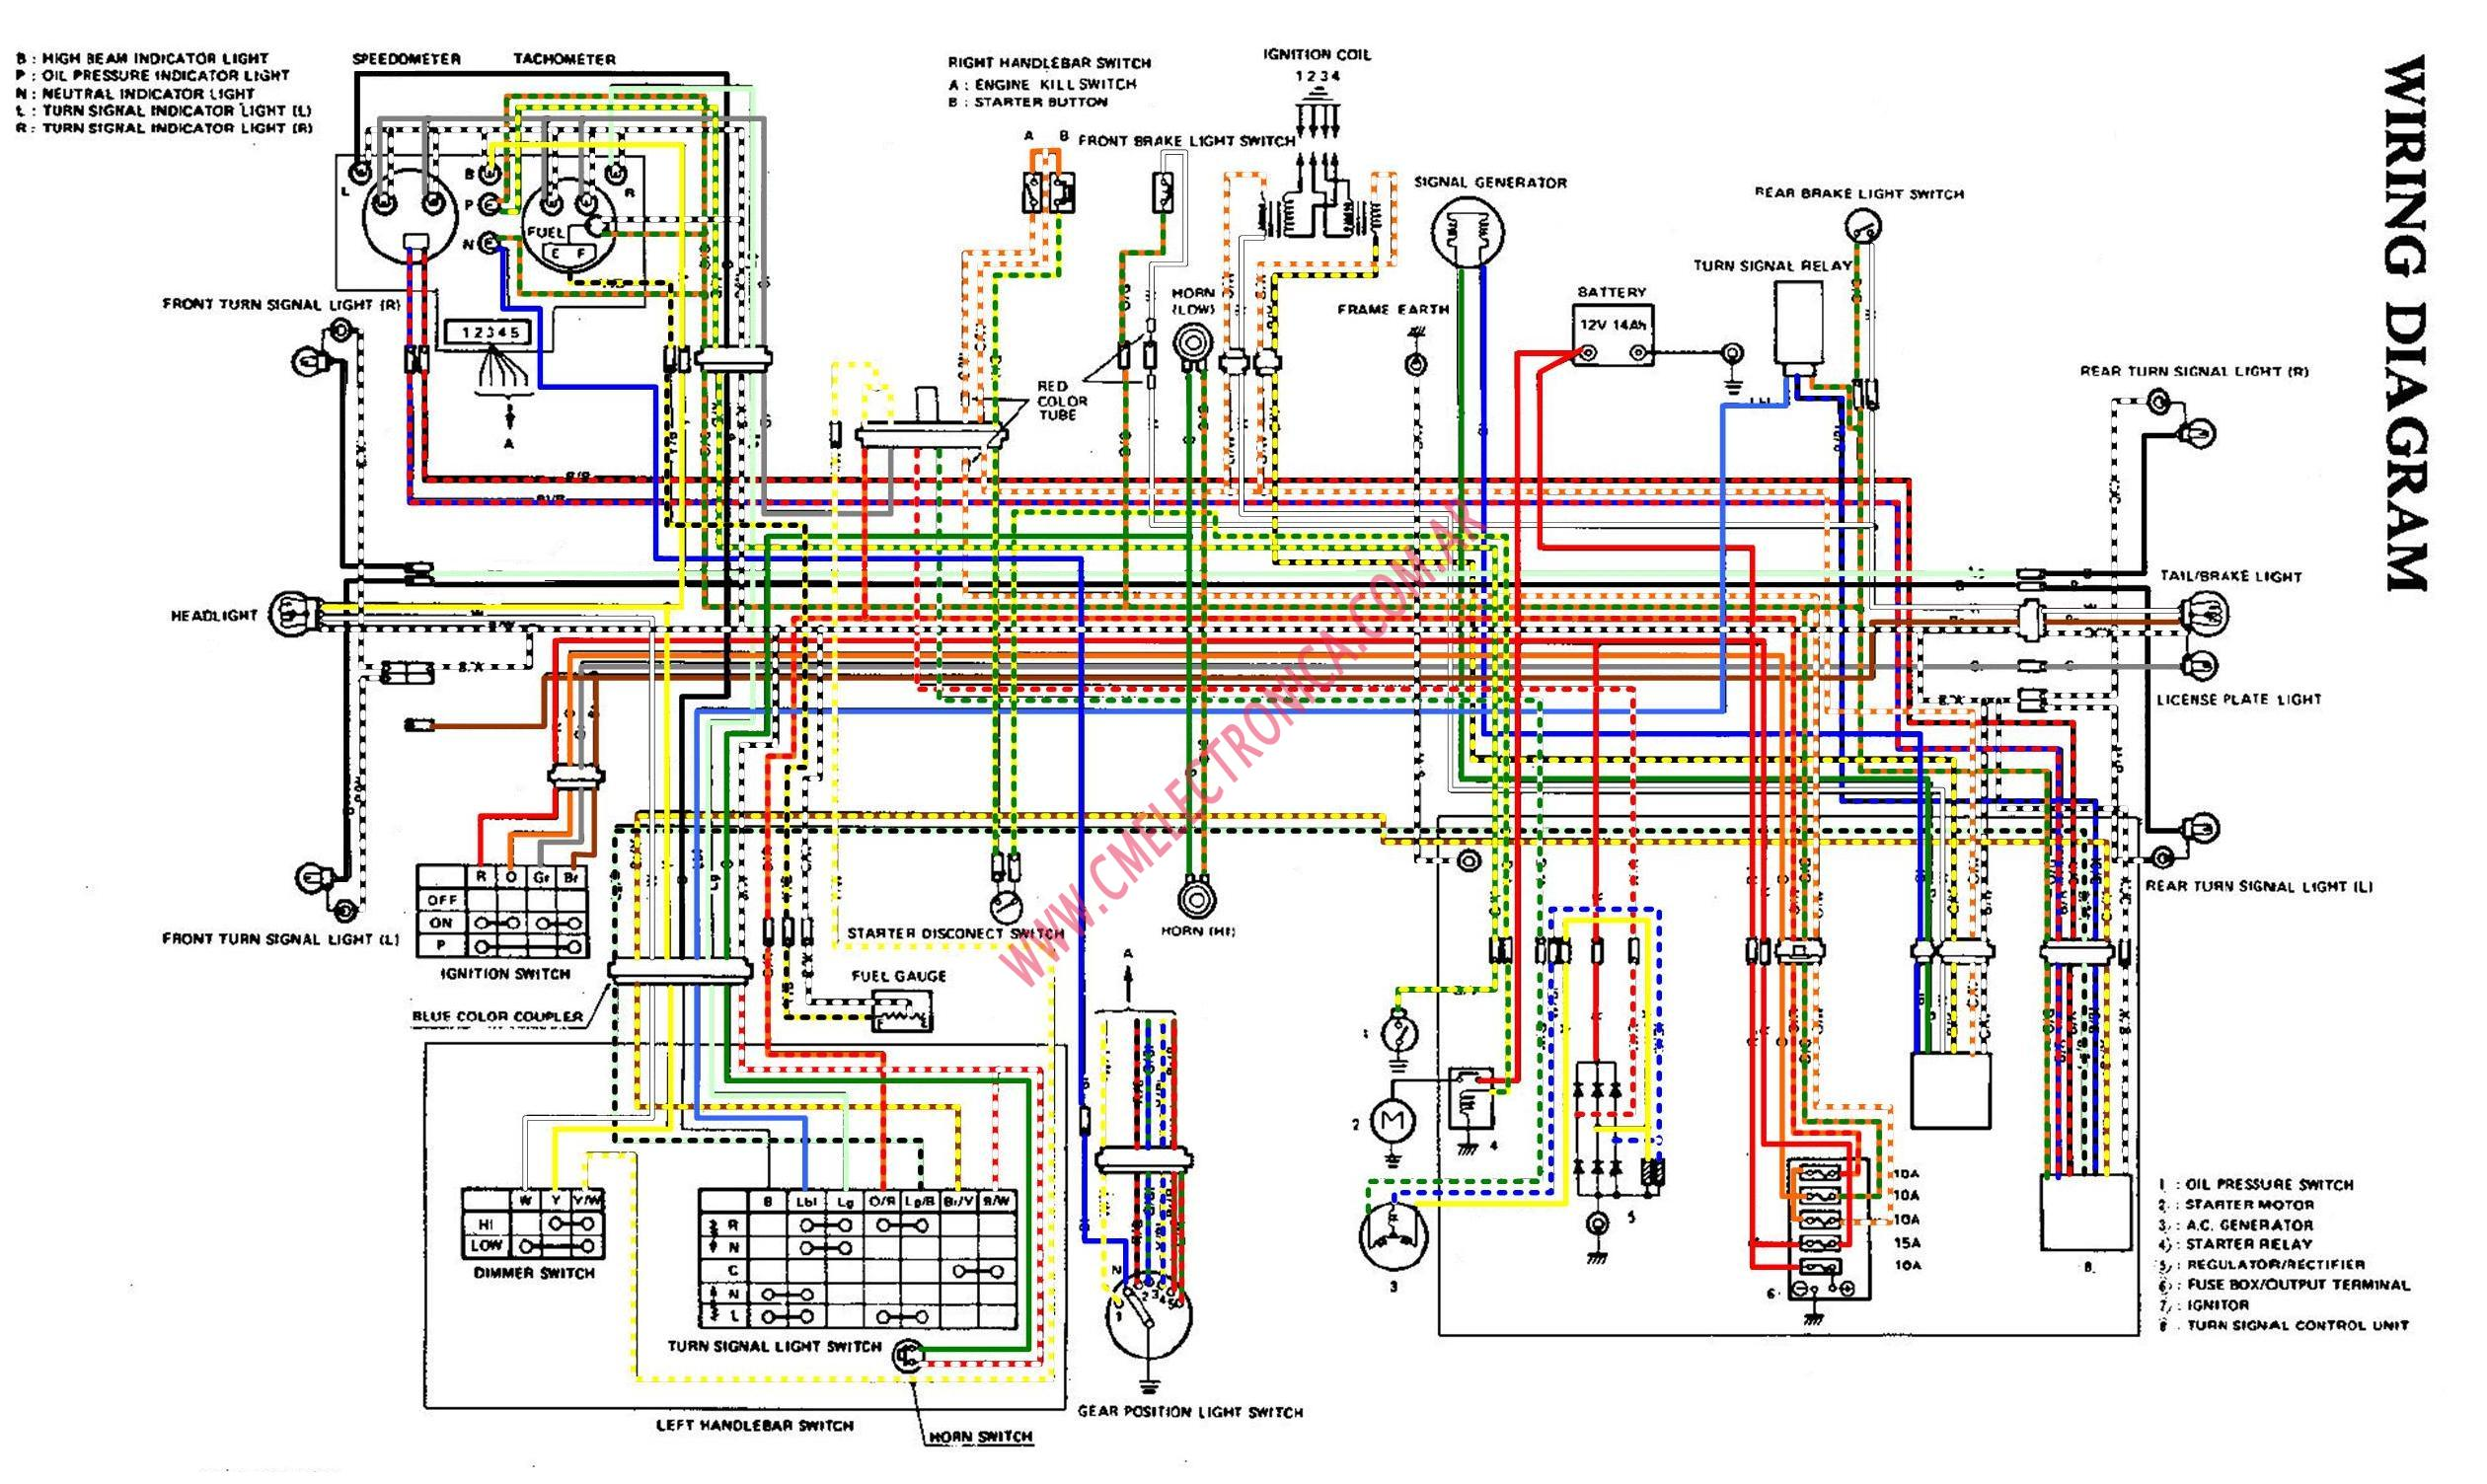 2007 Suzuki M50 Wiring Diagram Electrical Diagrams Yamaha Fz8 Vz800 Database Intruder 1400